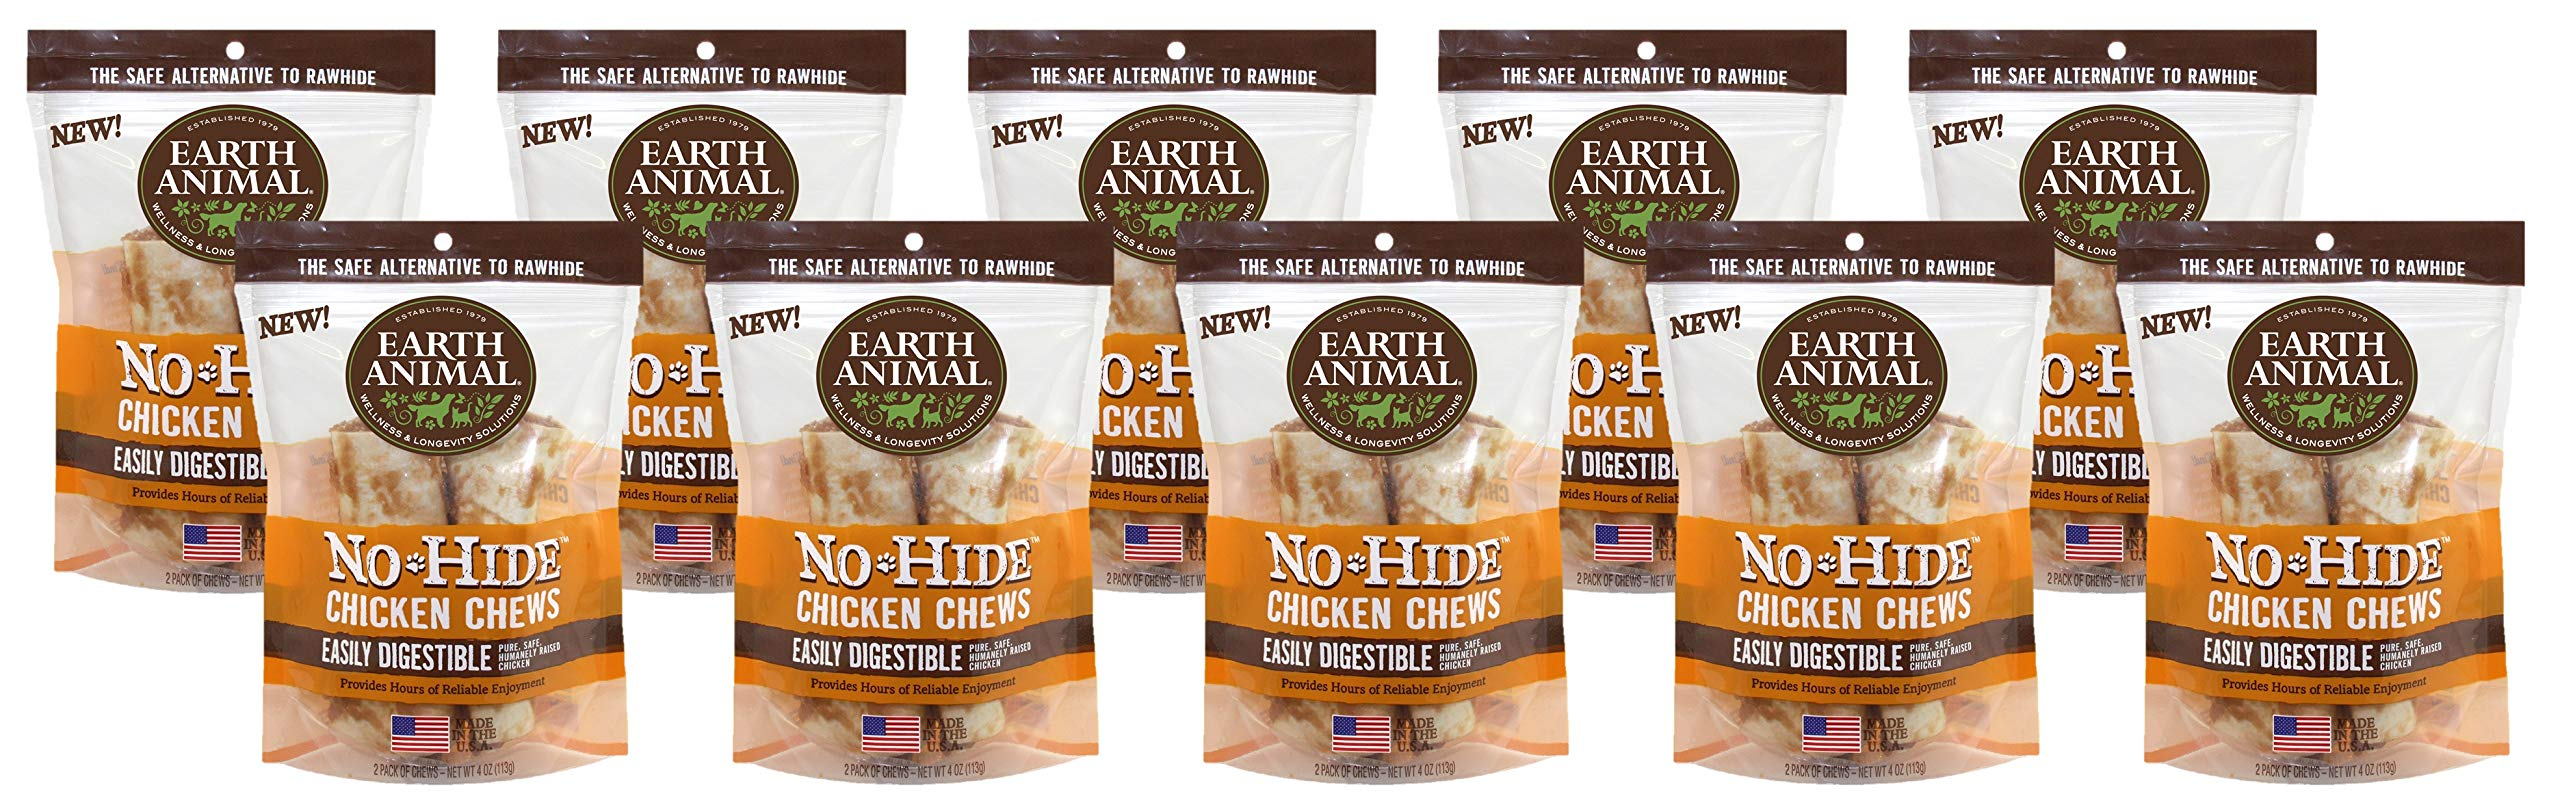 Earth Animal 20 Count No-Hide Chicken Chews, Small 4 Inch, Rawhide Alternative for Dogs Up to 45 Pounds by Earth Animal (Image #1)